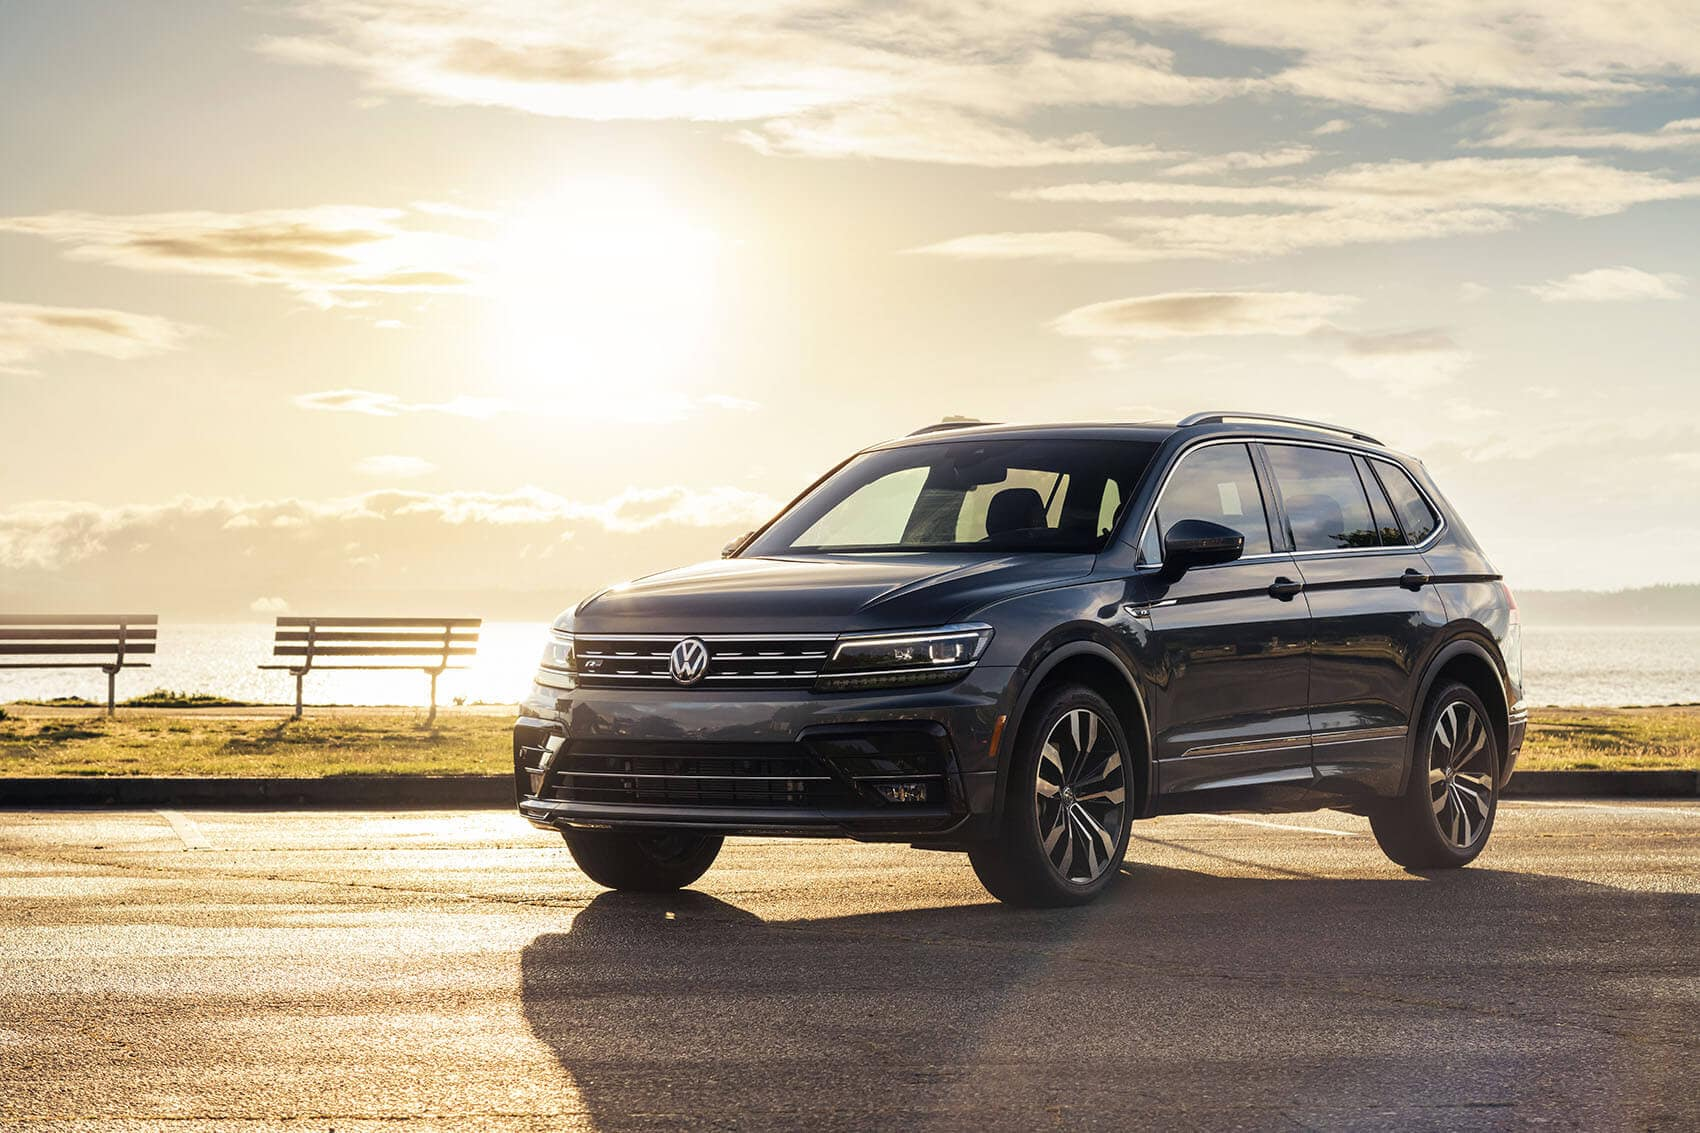 VW Tiguan With Sunset Behind